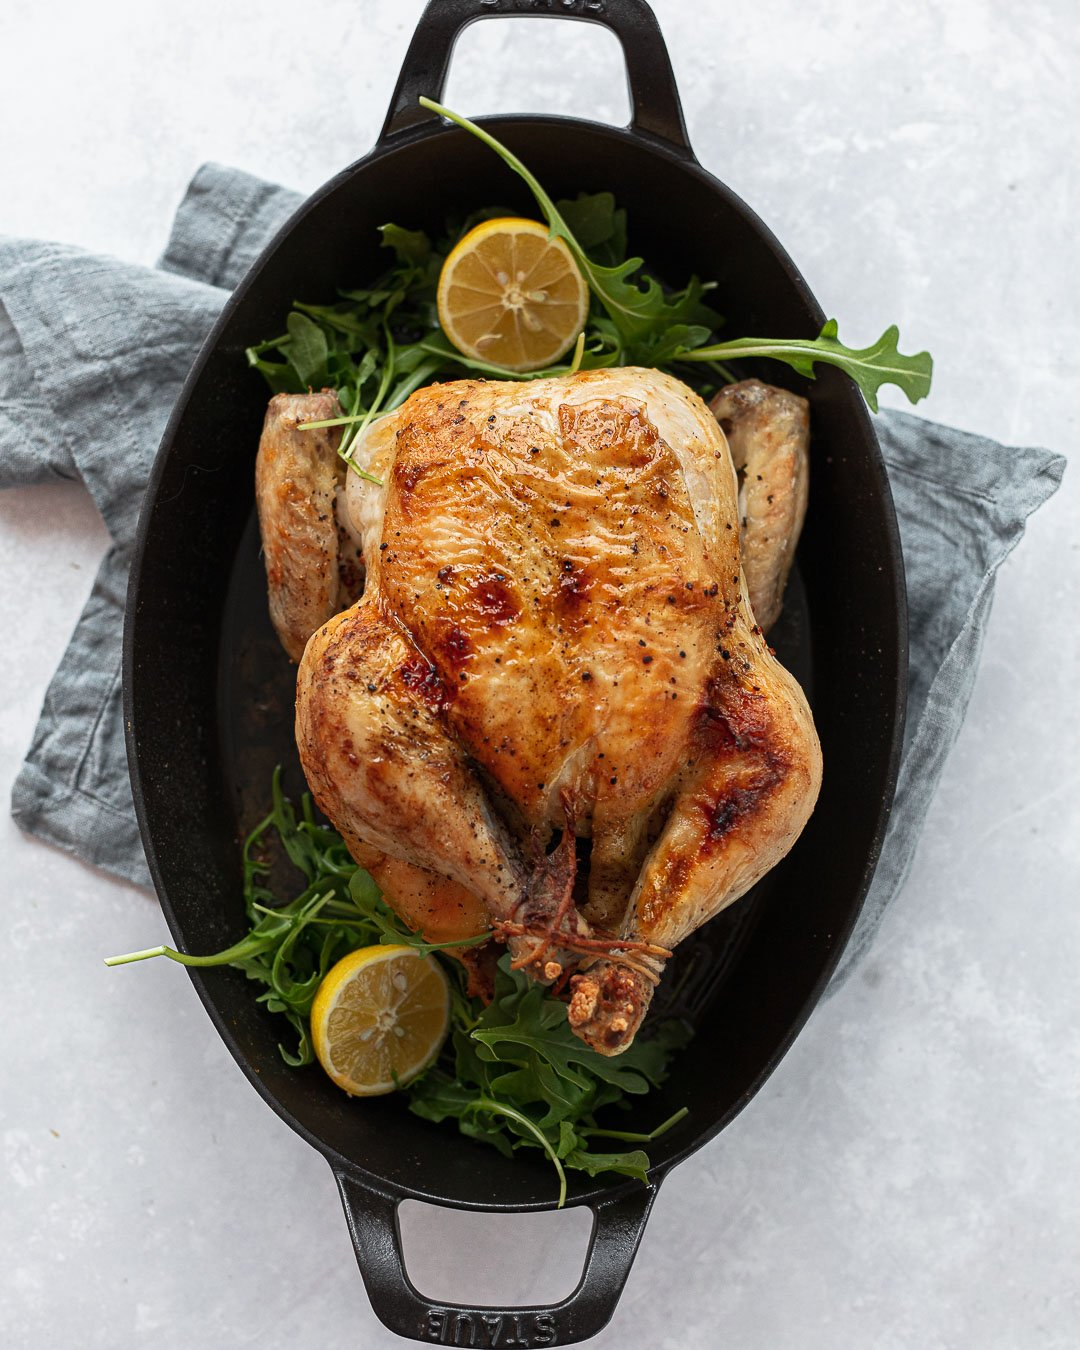 A roasted whole chicken in an oval cast iron baking dish, with lemon and a gray napkin.